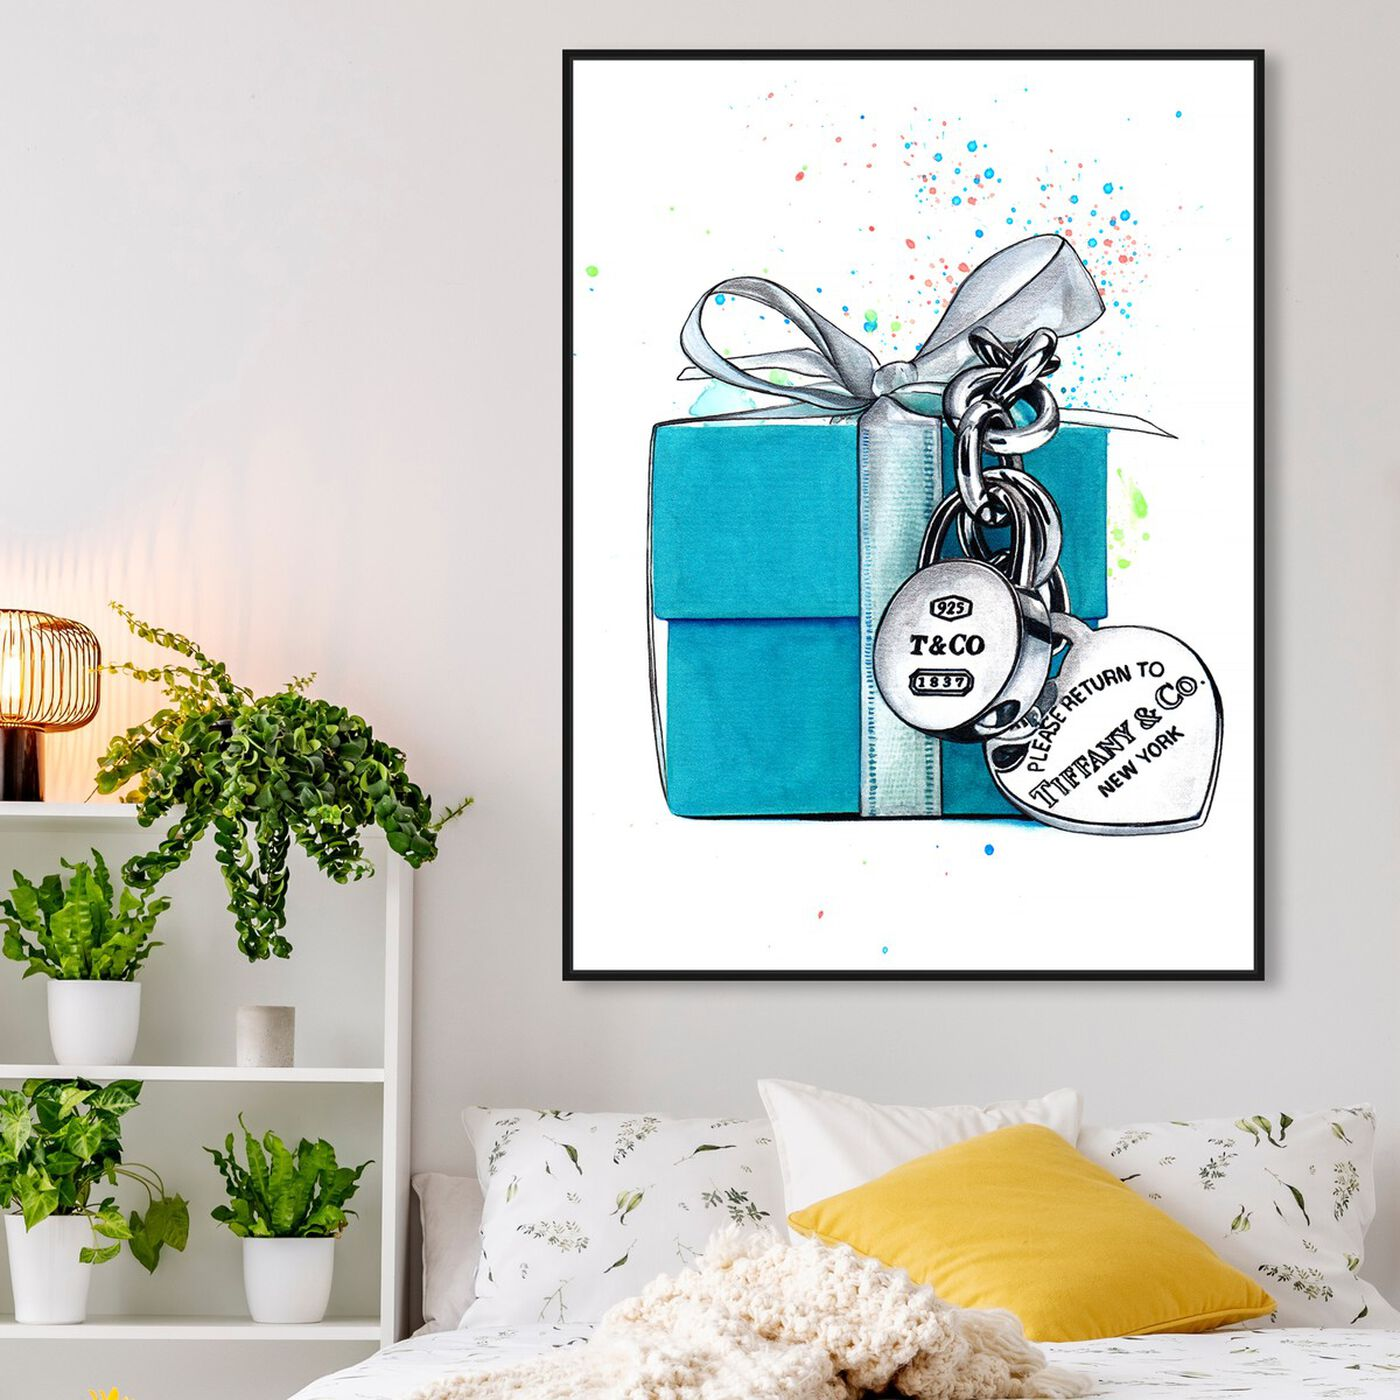 Hanging view of Doll Memories - New York Gift featuring fashion and glam and jewelry art.